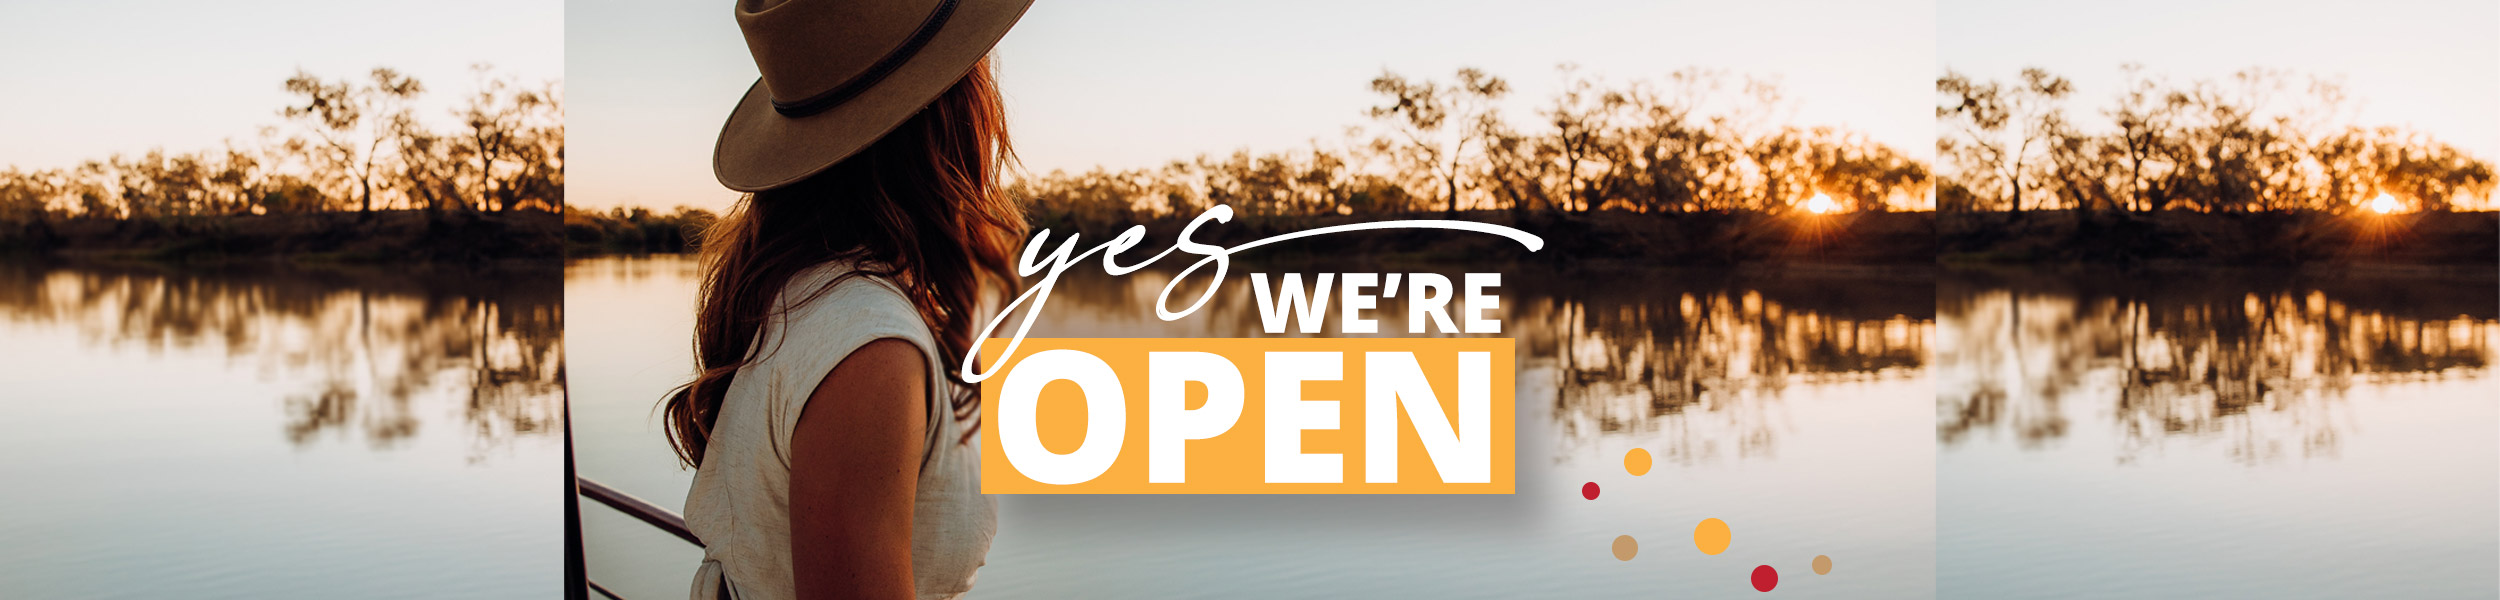 Yes,-we're-open_slider_2000x600